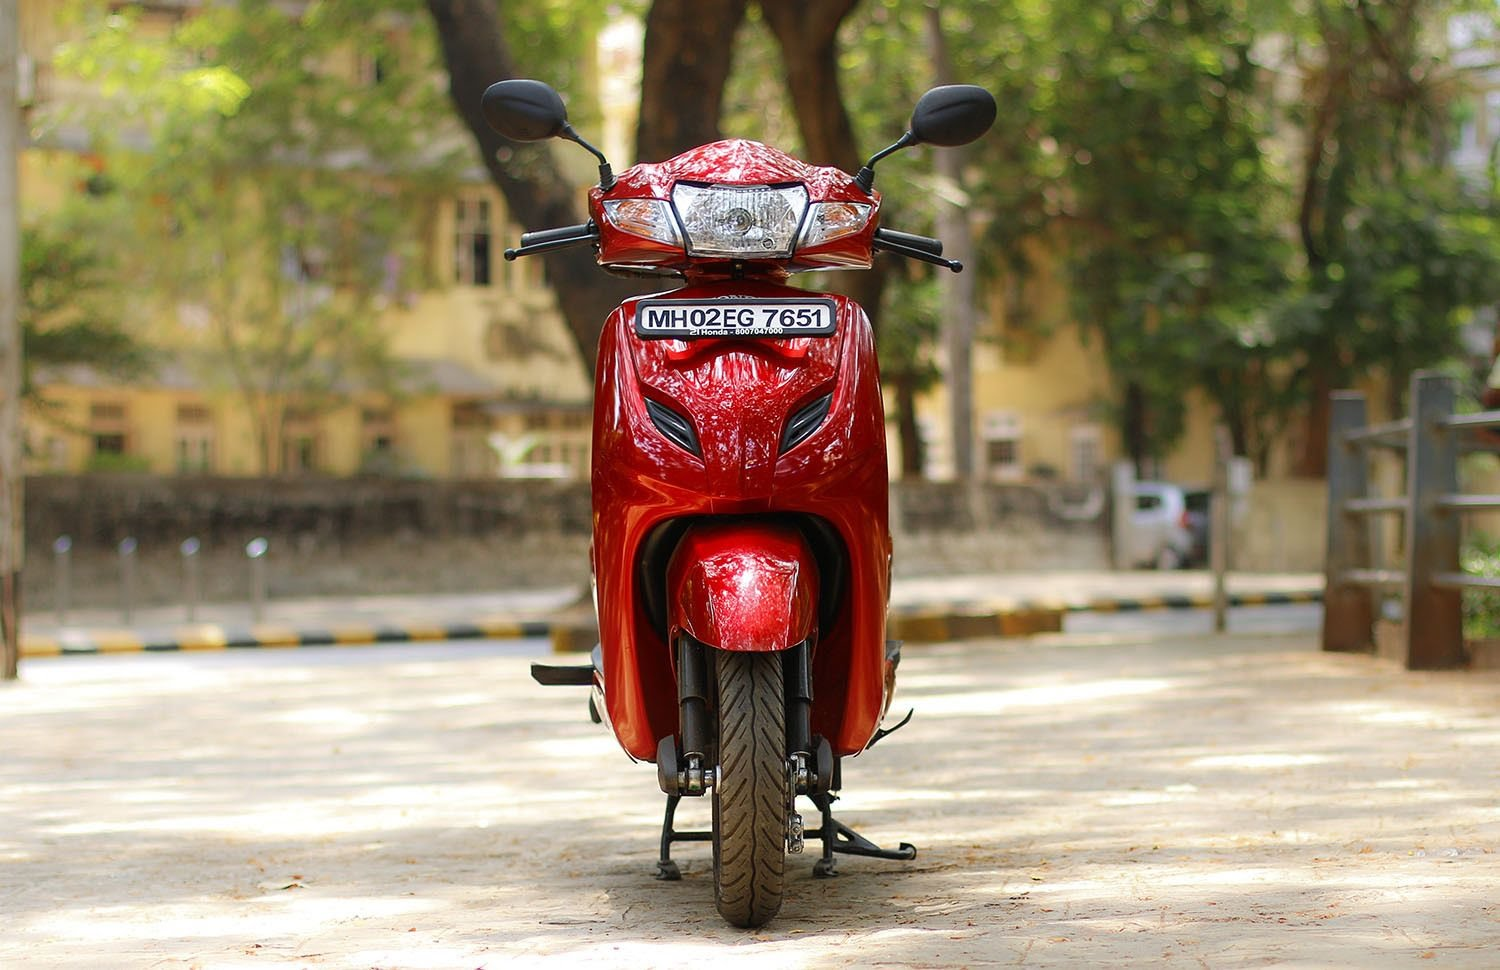 Top Activa 4g Price Details Bike Stickers Design Honda Dio Scooter India Hmsi Which Had Earlier Revealed Its Strategies To Introduce A Mix Of 10 Revitalized And All Brand New Items In 2015